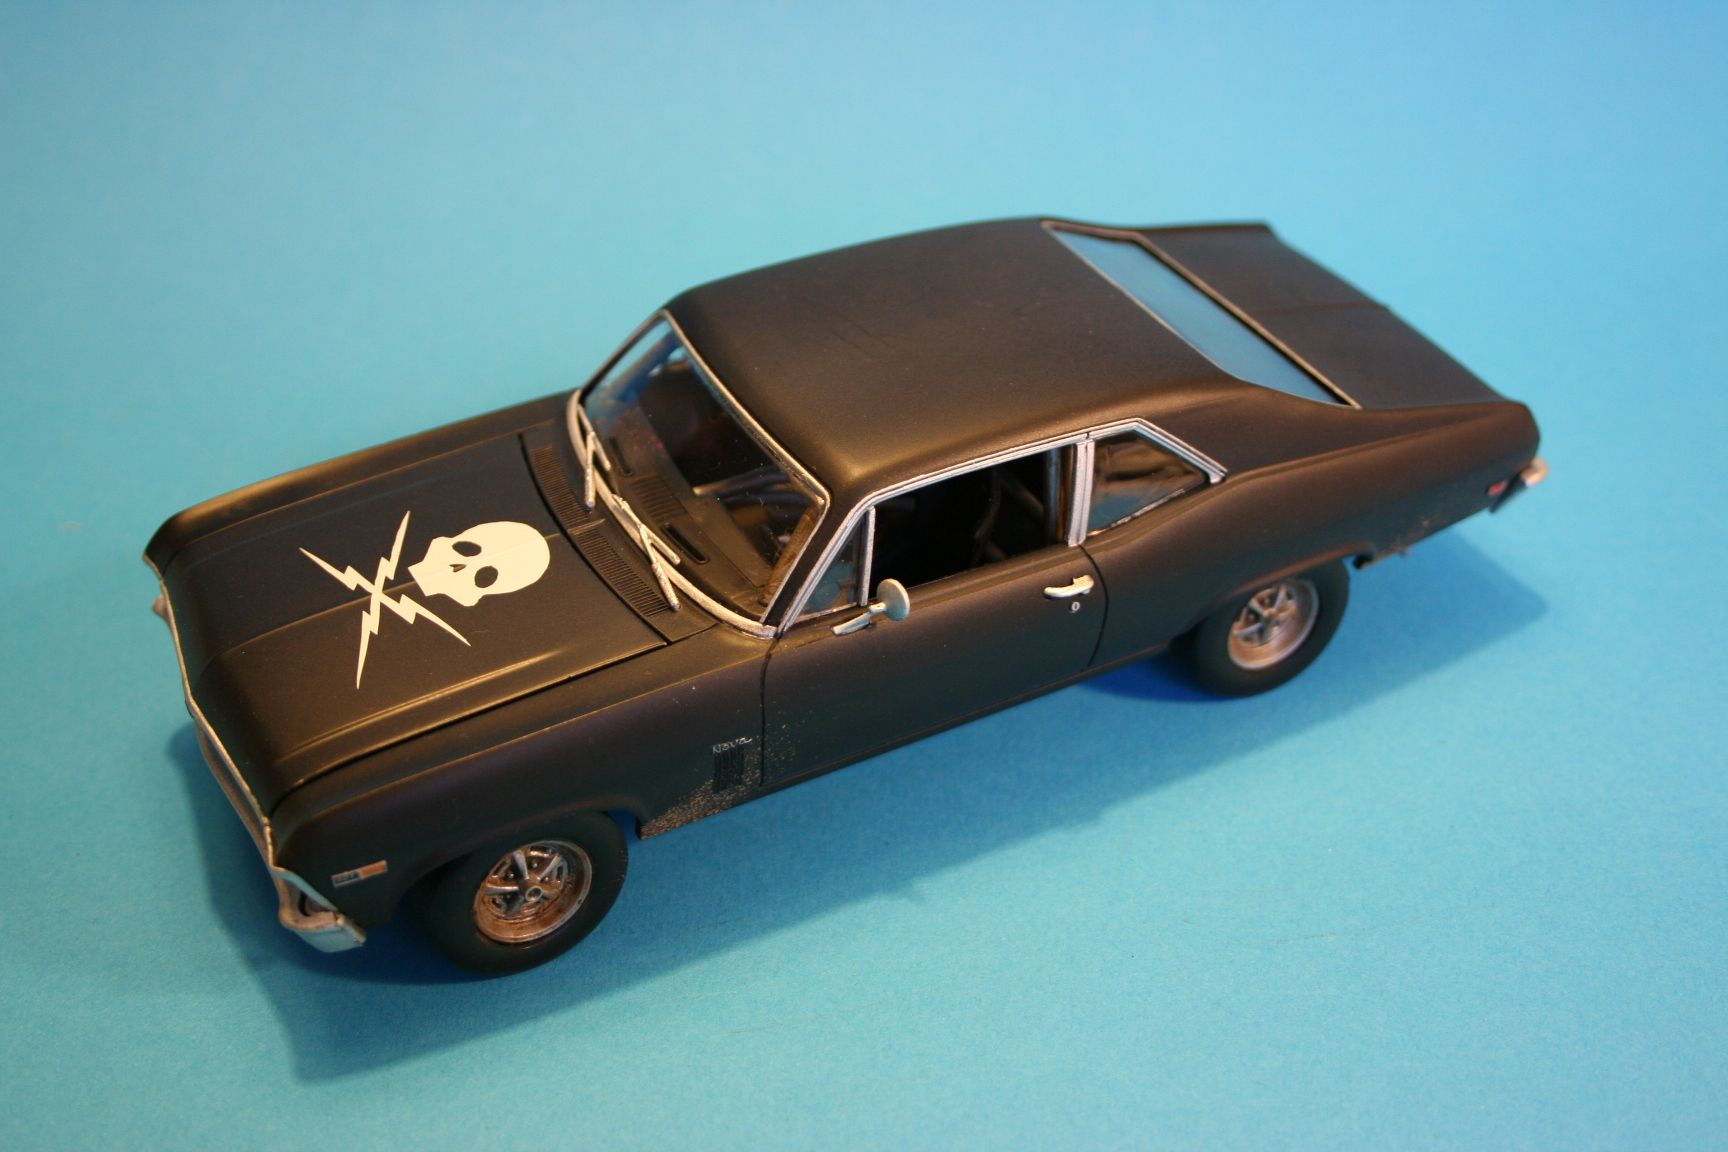 Death Proof Chevy Nova scale model | Scale Modeling | Pinterest